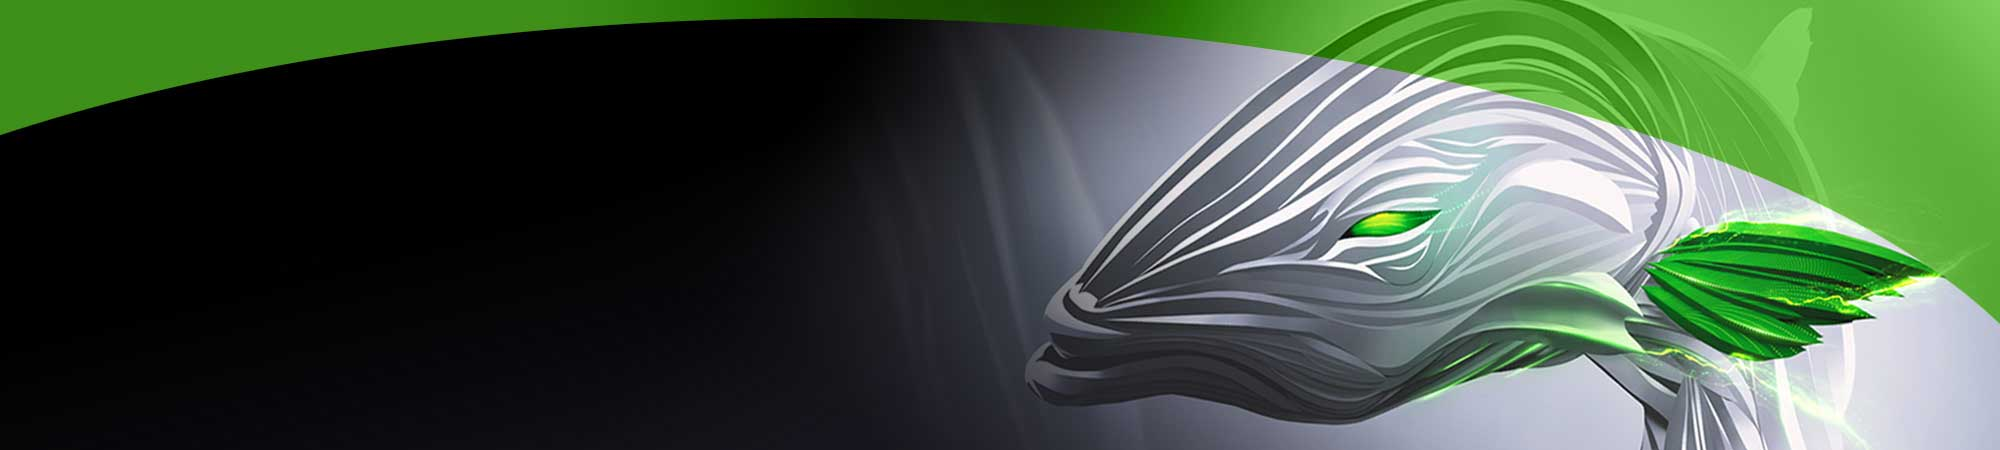 http://www.seagate.com/files/www-content/product-content/barracuda-fam/barracuda-new/images/BarraCuda_top_banner.jpg